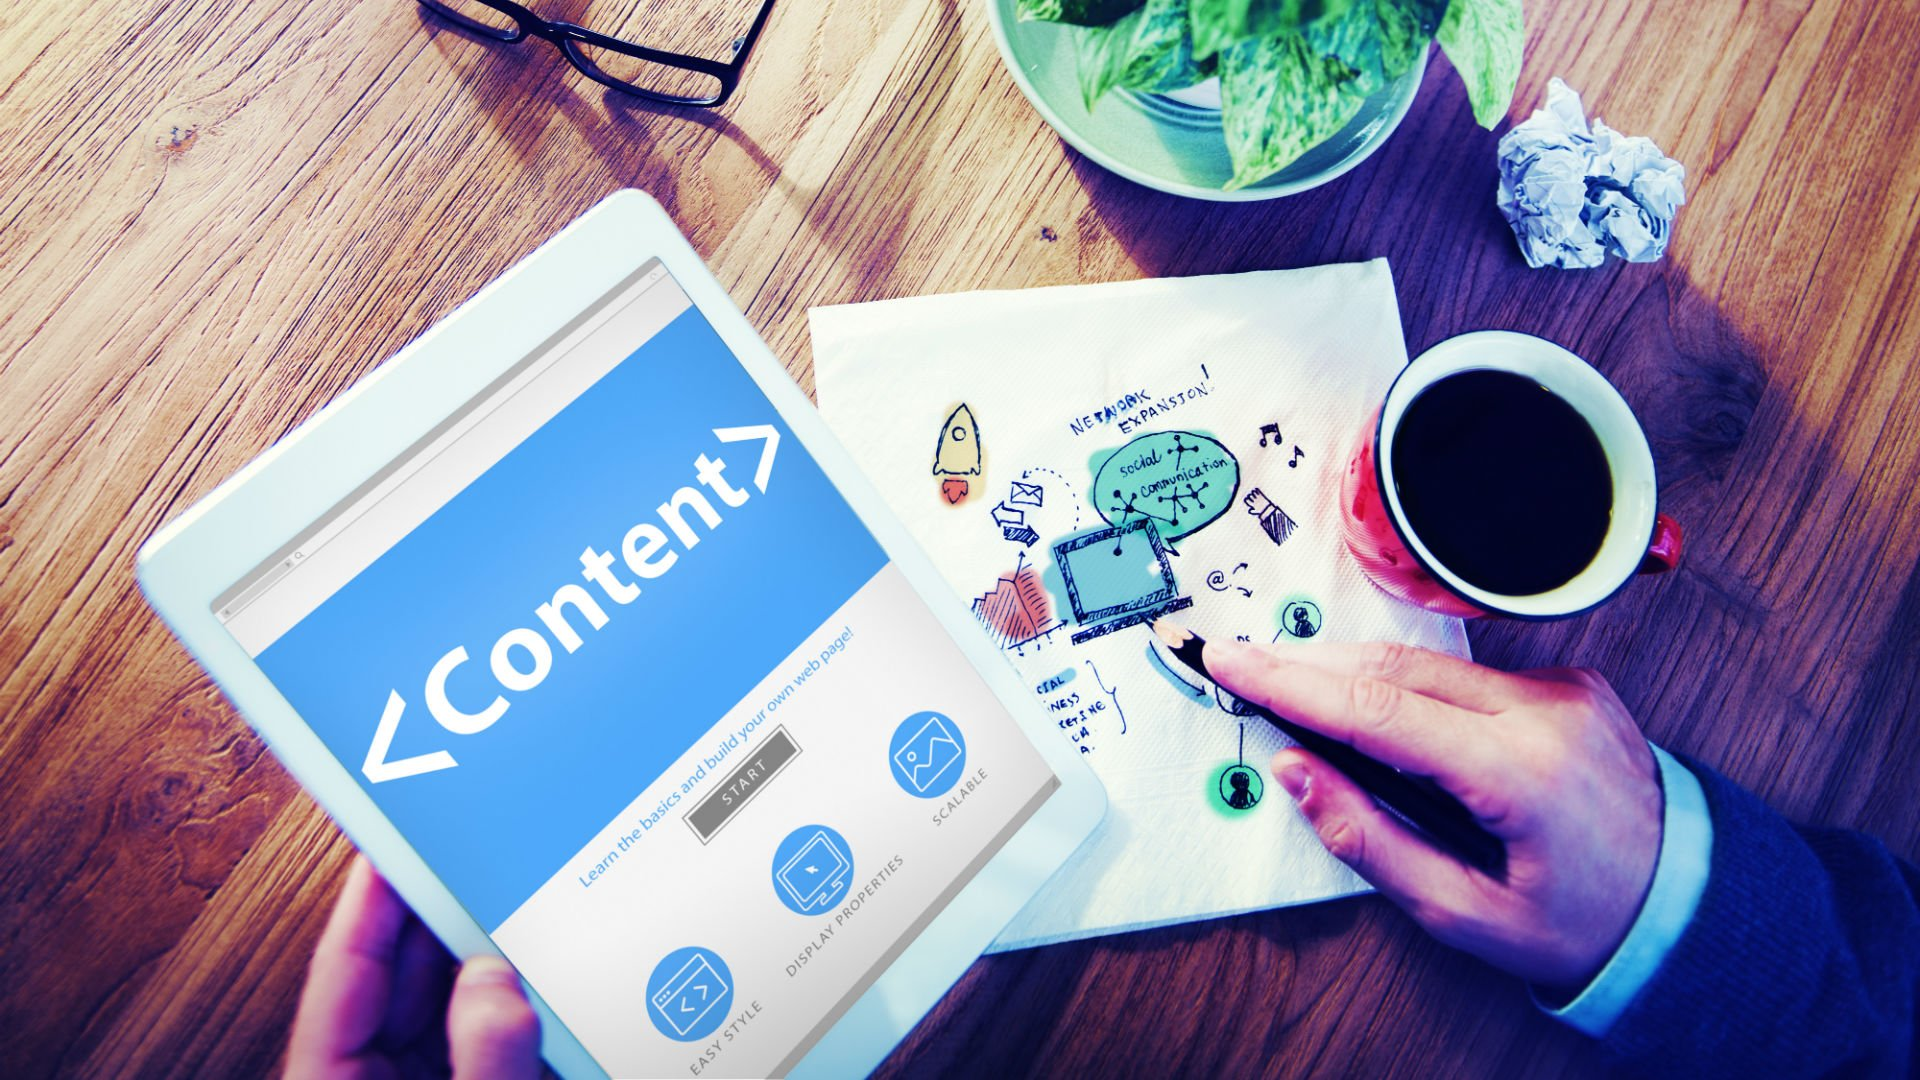 content-planning-web-ss-1920-4